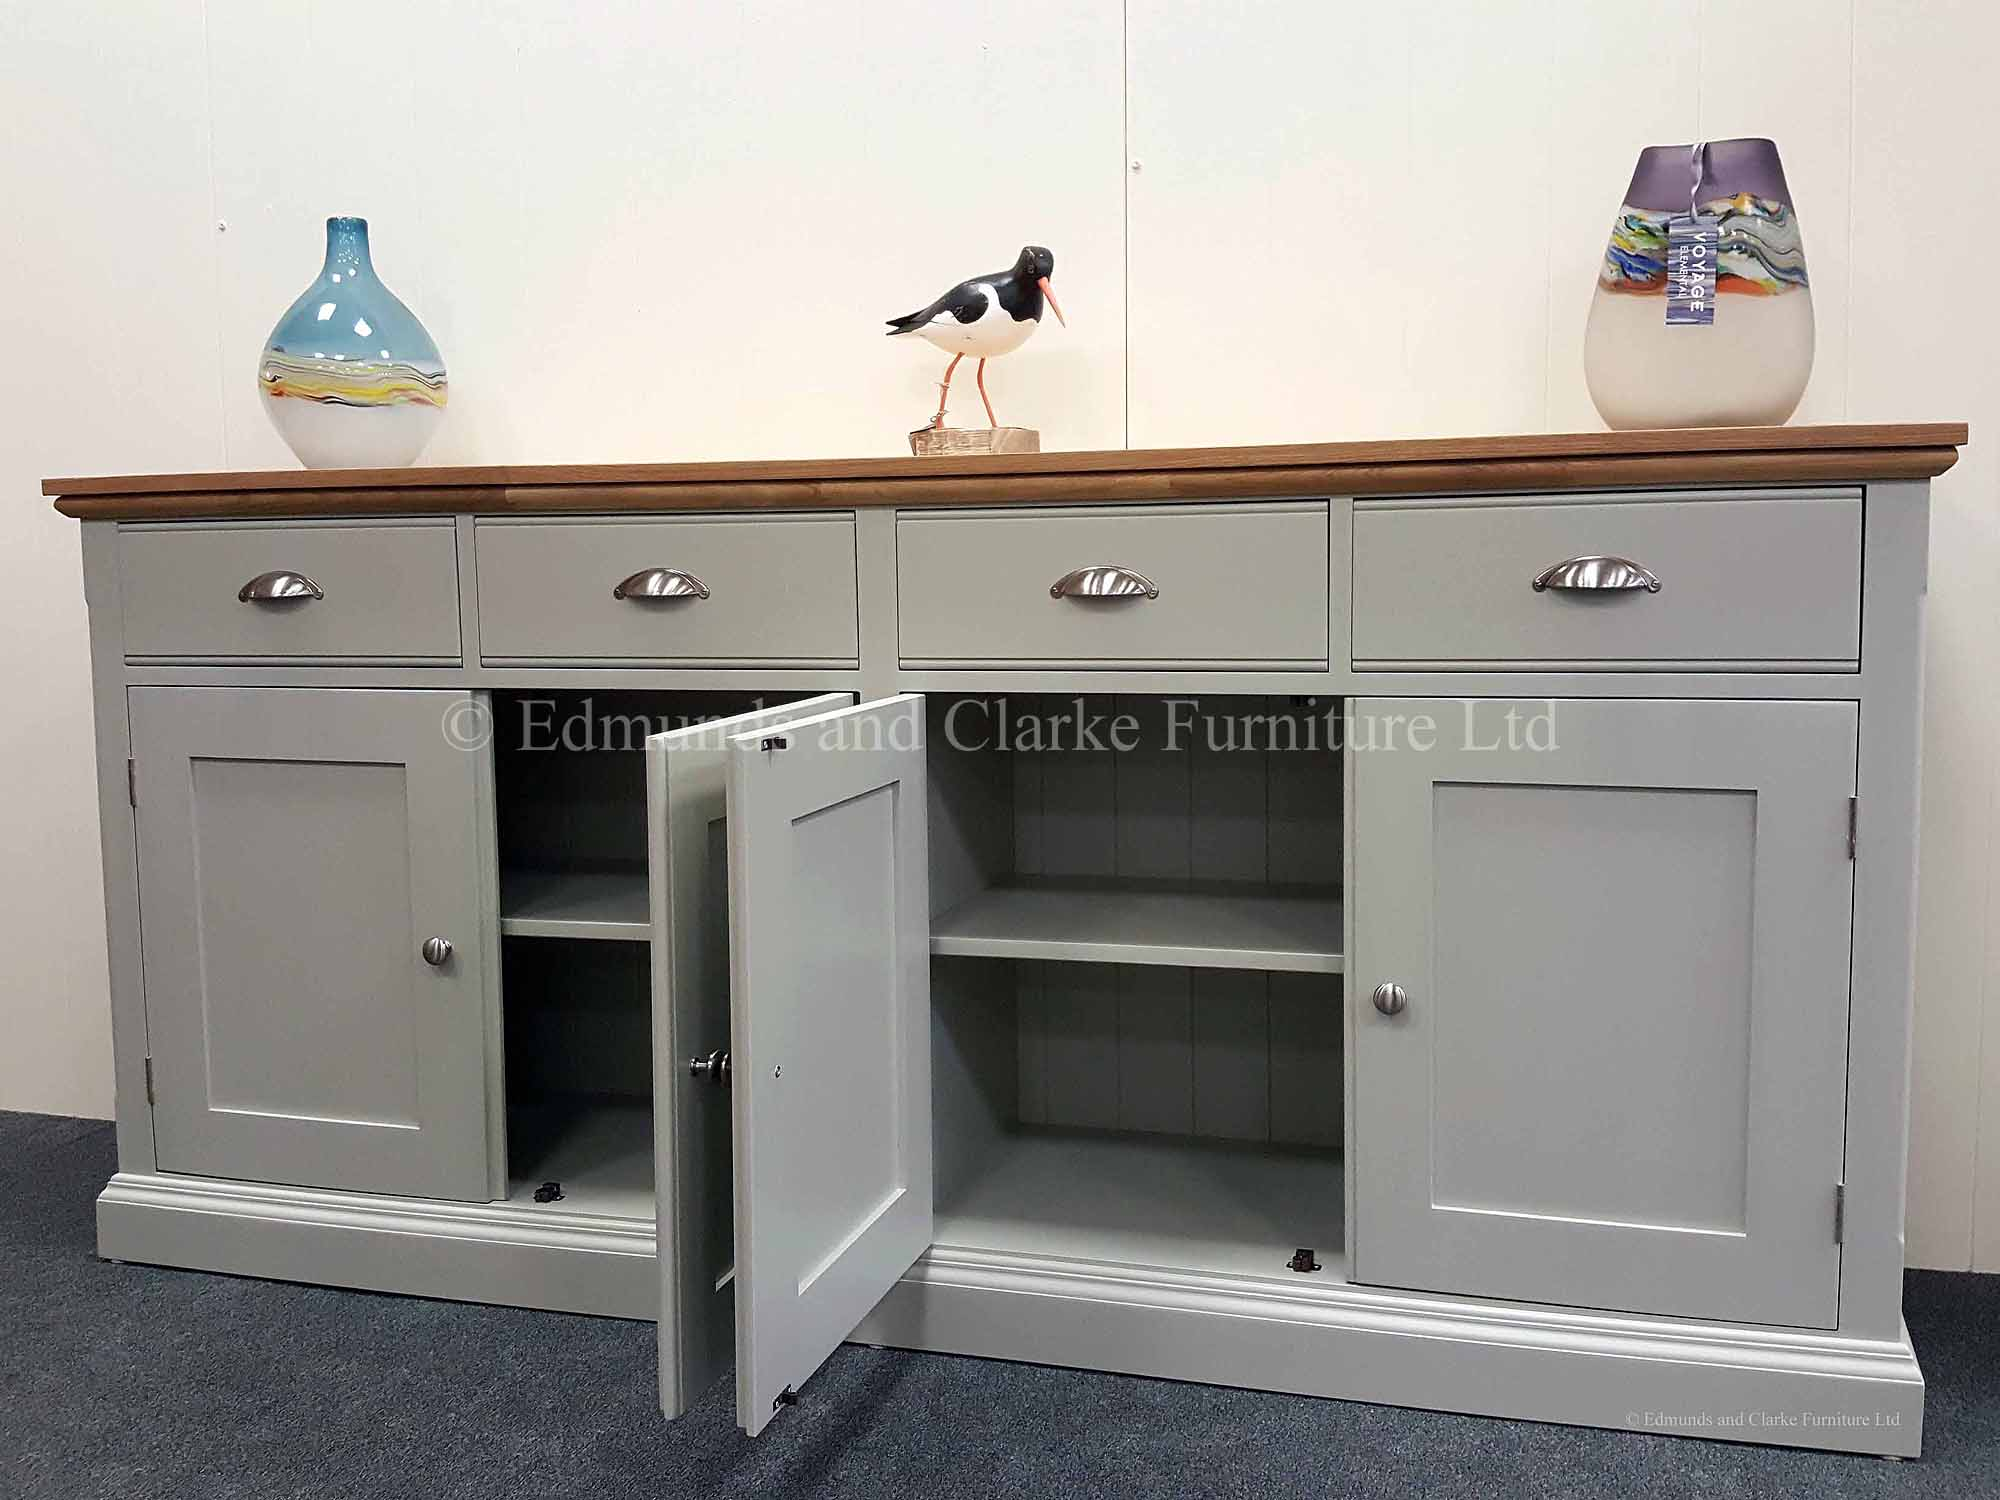 Painted sideboard 6ft wide 4 doors and drawers grey with oak top